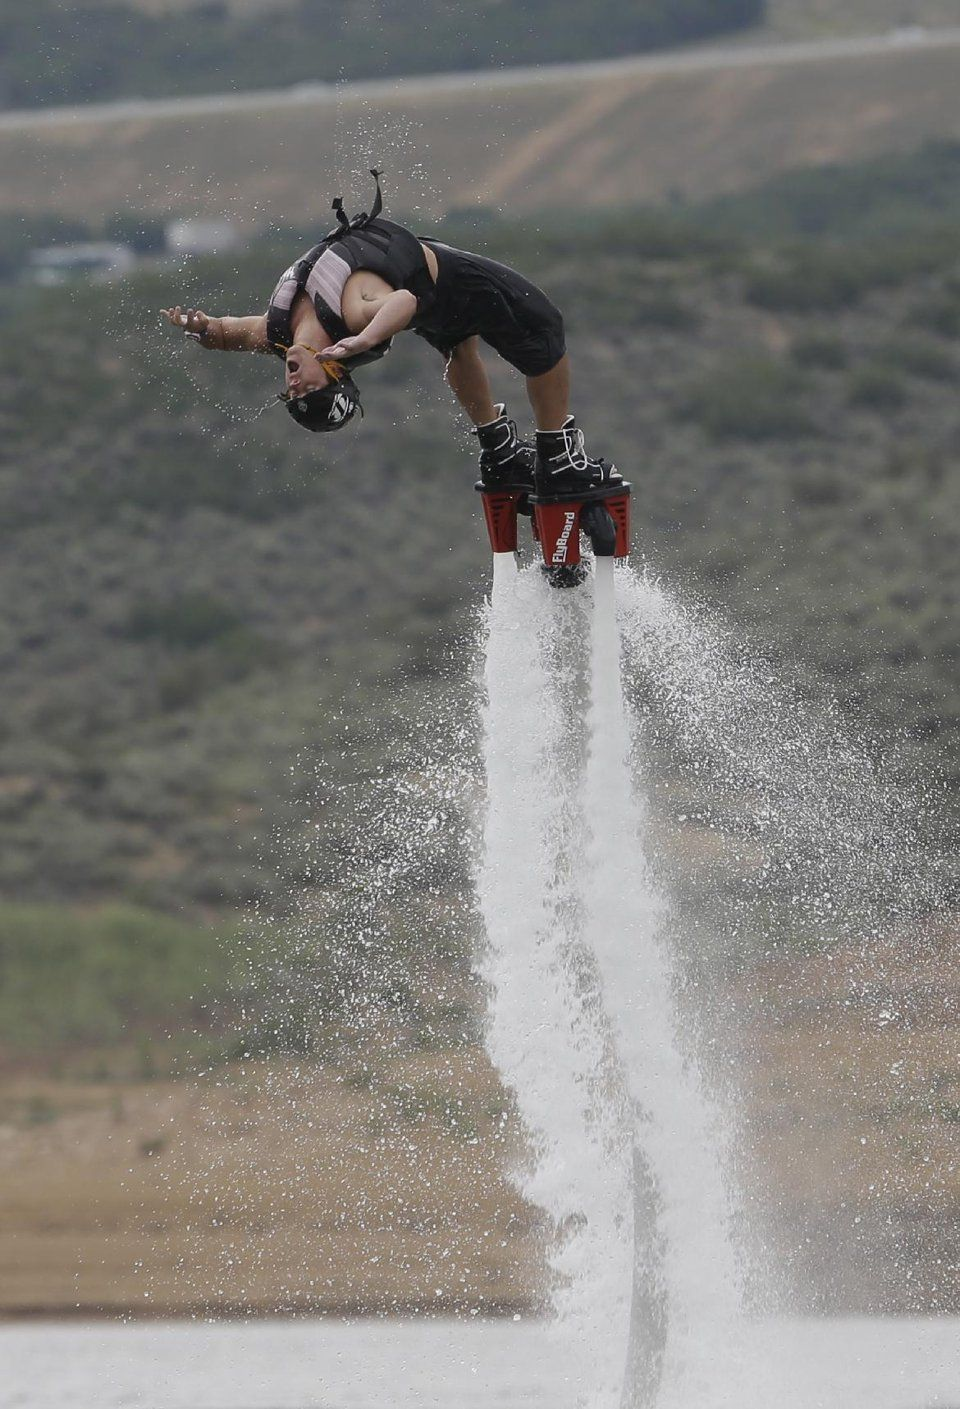 This July 24, 2013, photo, Rocky Mountain Flyboard instructor Chase Shaw flips with his flyboard, on the Jordanelle Reservoir, at Jordanelle State Park, Utah. The Flyboard, which looks like a small snowboard attached to a hose, can propel you 45 feet in the air using water pumped from a personal watercraft like a Jet Ski to the base of the board. New devices that pump water fast enough to make people defy gravity are drawing thrill-seekers eager to try the next new watersport, but Hawaii…